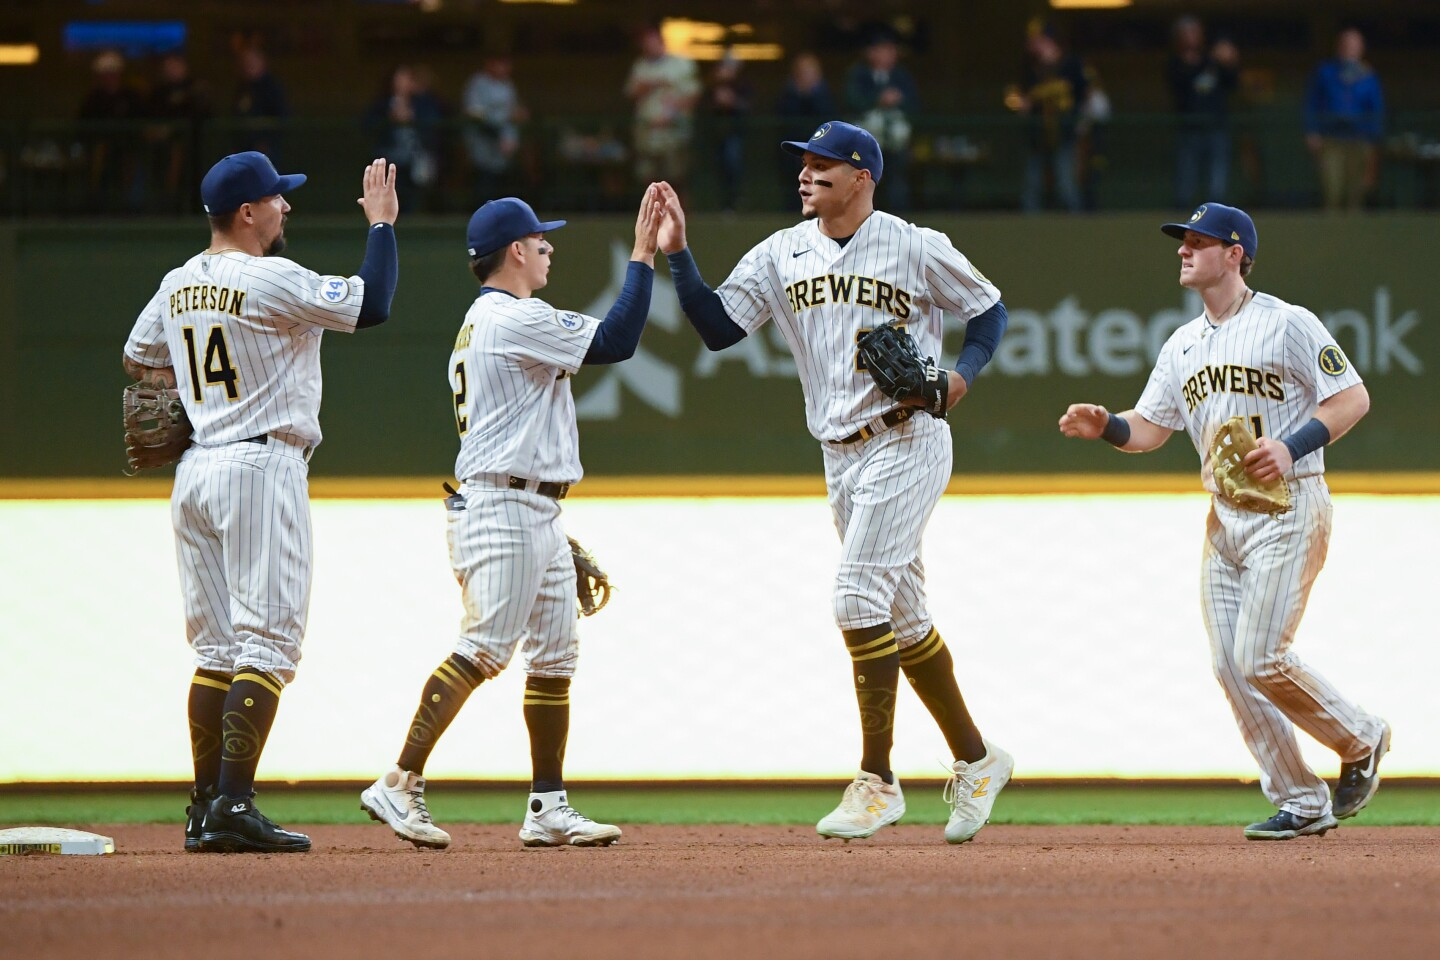 MILWAUKEE, WISCONSIN - APRIL 17: Avisail Garcia #24 of the Milwaukee Brewers and his teammates celebrate the team win against the Pittsburgh Pirates after the MLB game at American Family Field on April 17, 2021 in Milwaukee, Wisconsin. (Photo by Quinn Harris/Getty Images)